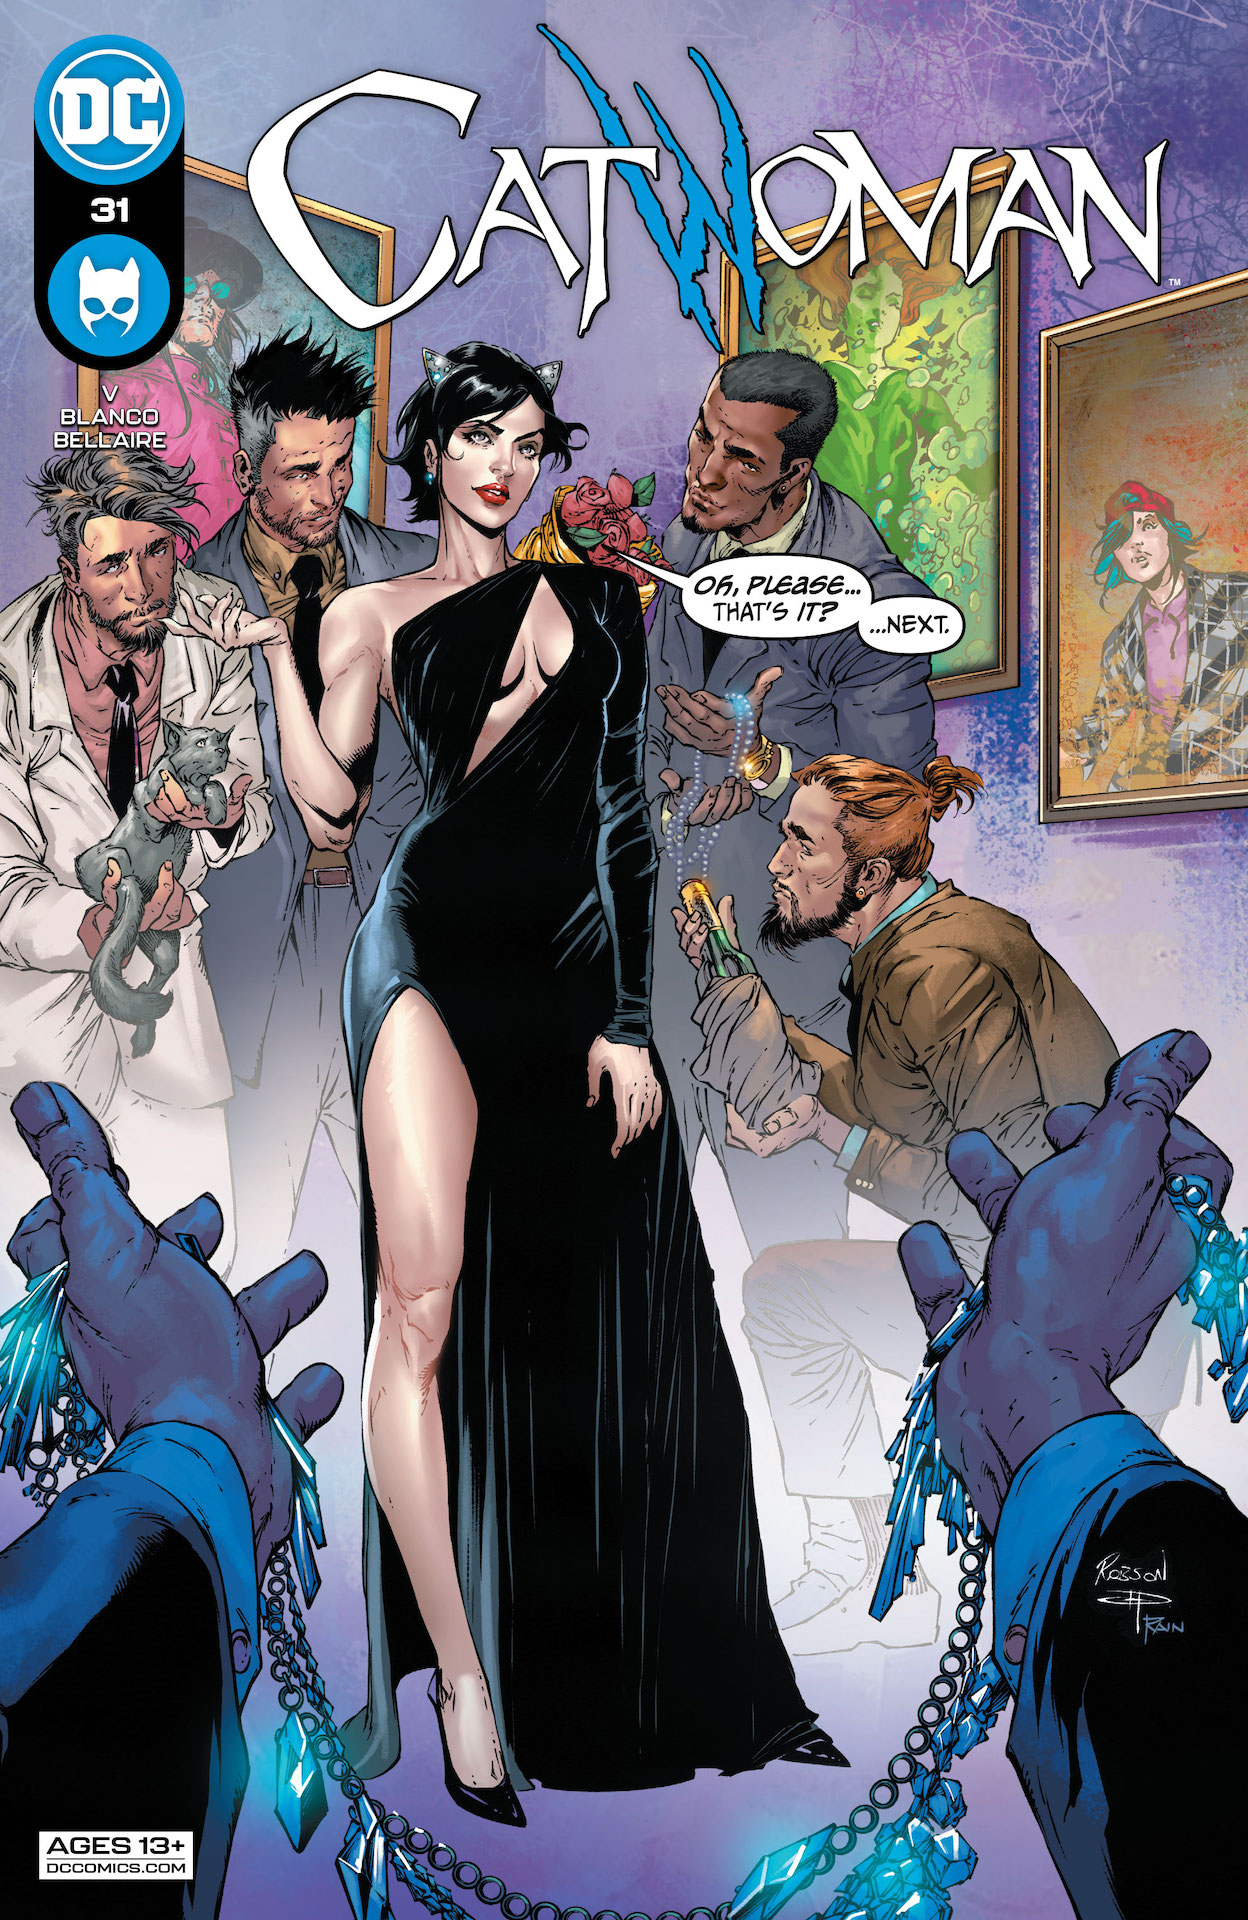 DC Preview: Catwoman #31